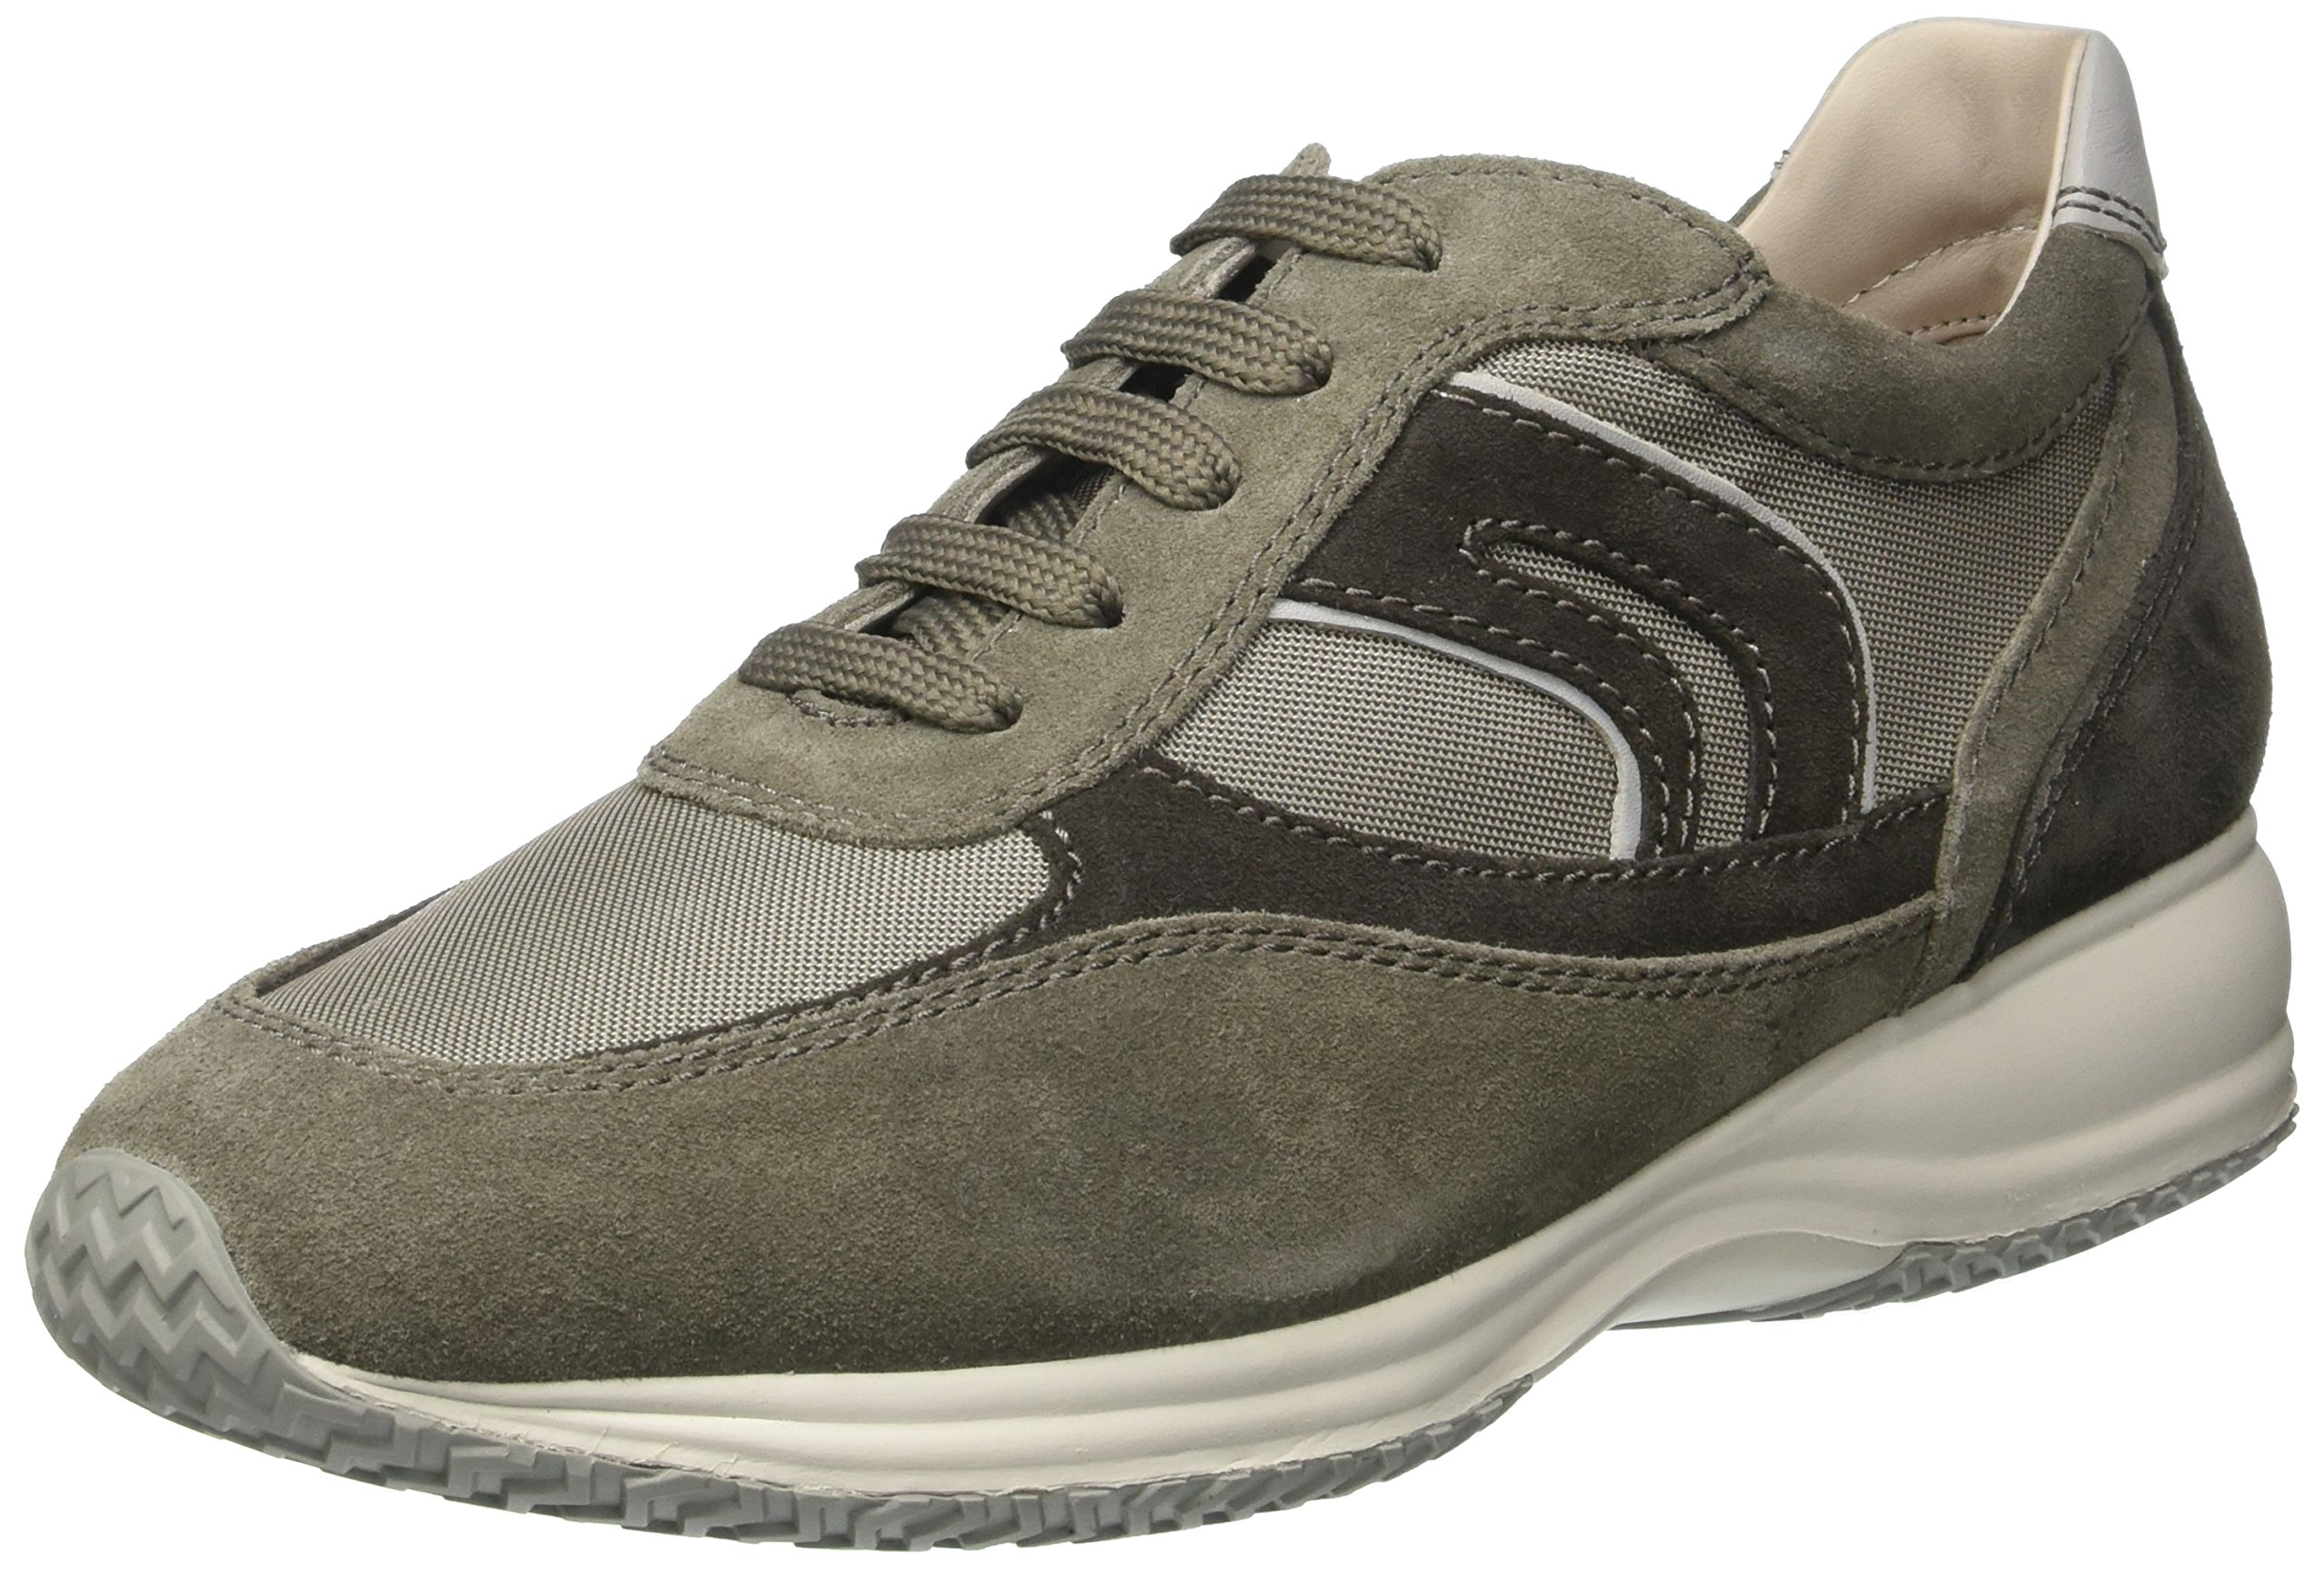 Geox Art greyc938041 Happy pSneakers U Basses HommeGrisanthracite Eu HED29I